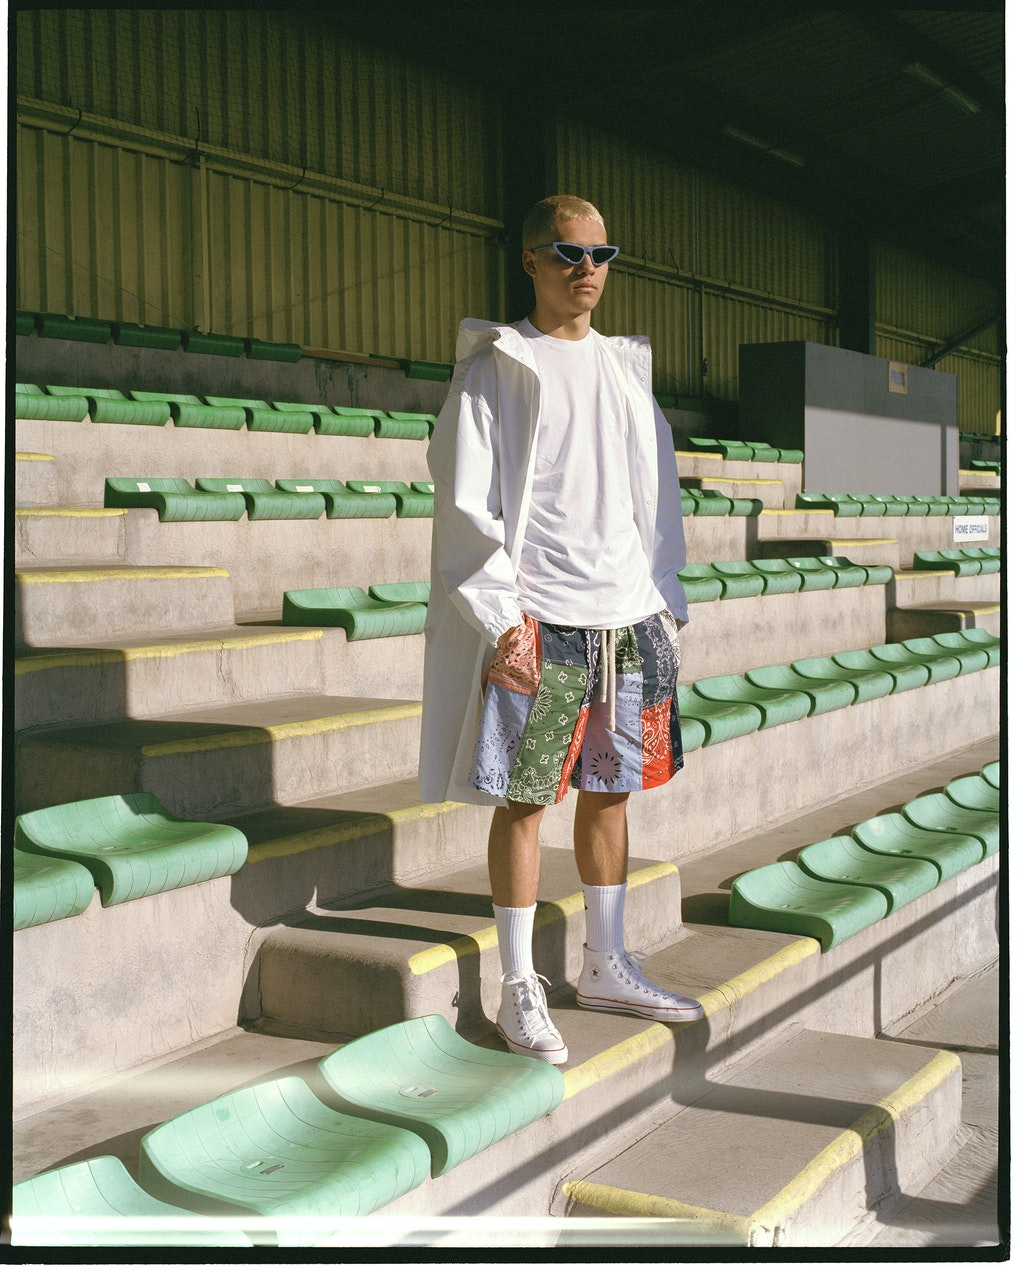 Soccerbible Magazine